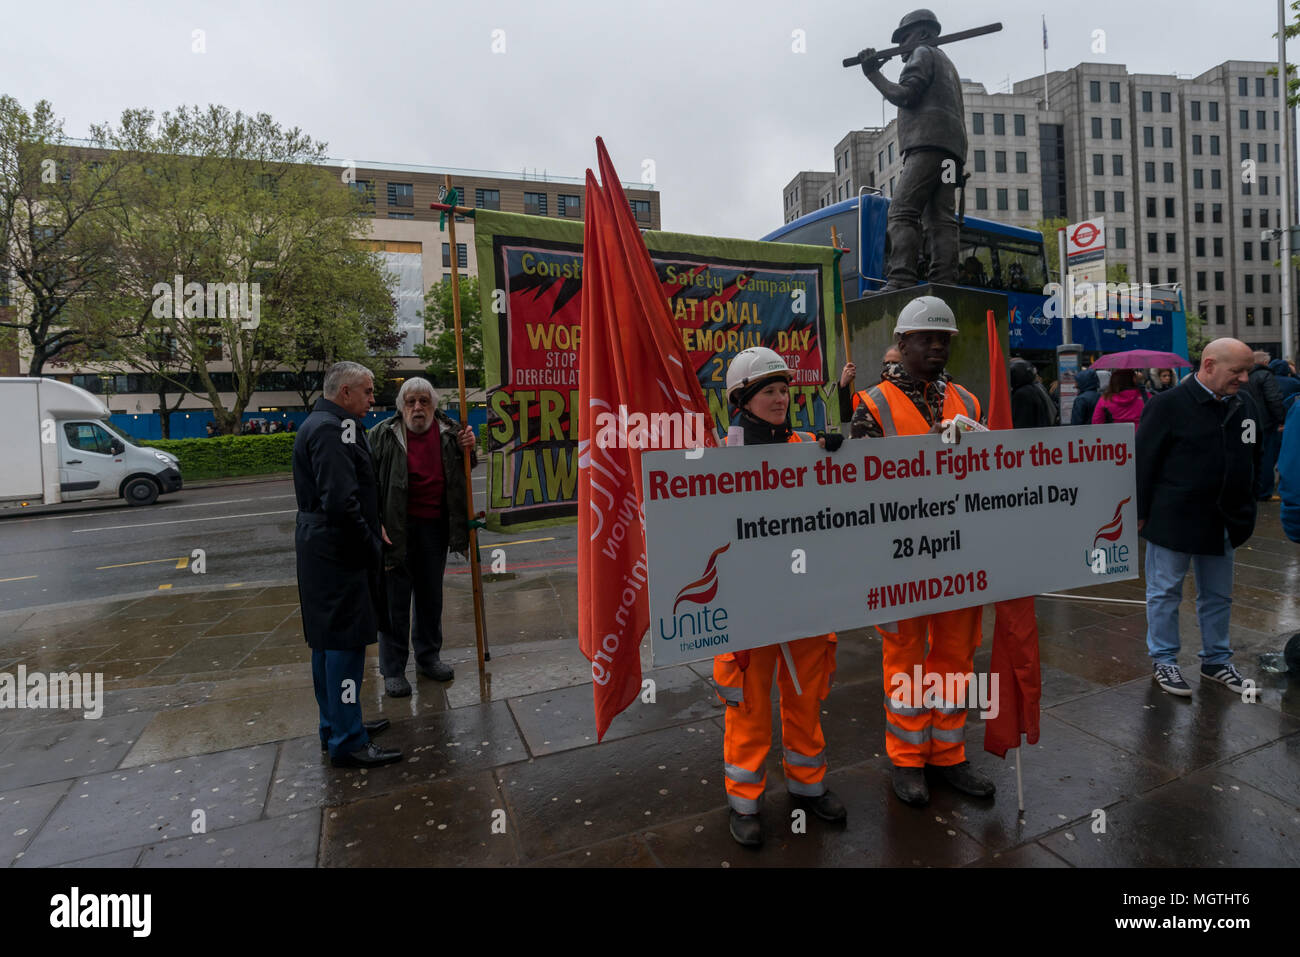 London, UK. 28 April 2018.  Unite workers pose with a large poster 'Remember the Dead. Fight for the Living' at the start of the International Workers' Memorial Day rally at the statue of a building worker on Tower Hill remembering all those killed at work, around 500 in the last ten years, mainly in the construction industry, as well as those injured, disabled and made unwell, almost all in preventable incidents. Credit: ZUMA Press, Inc./Alamy Live News - Stock Image